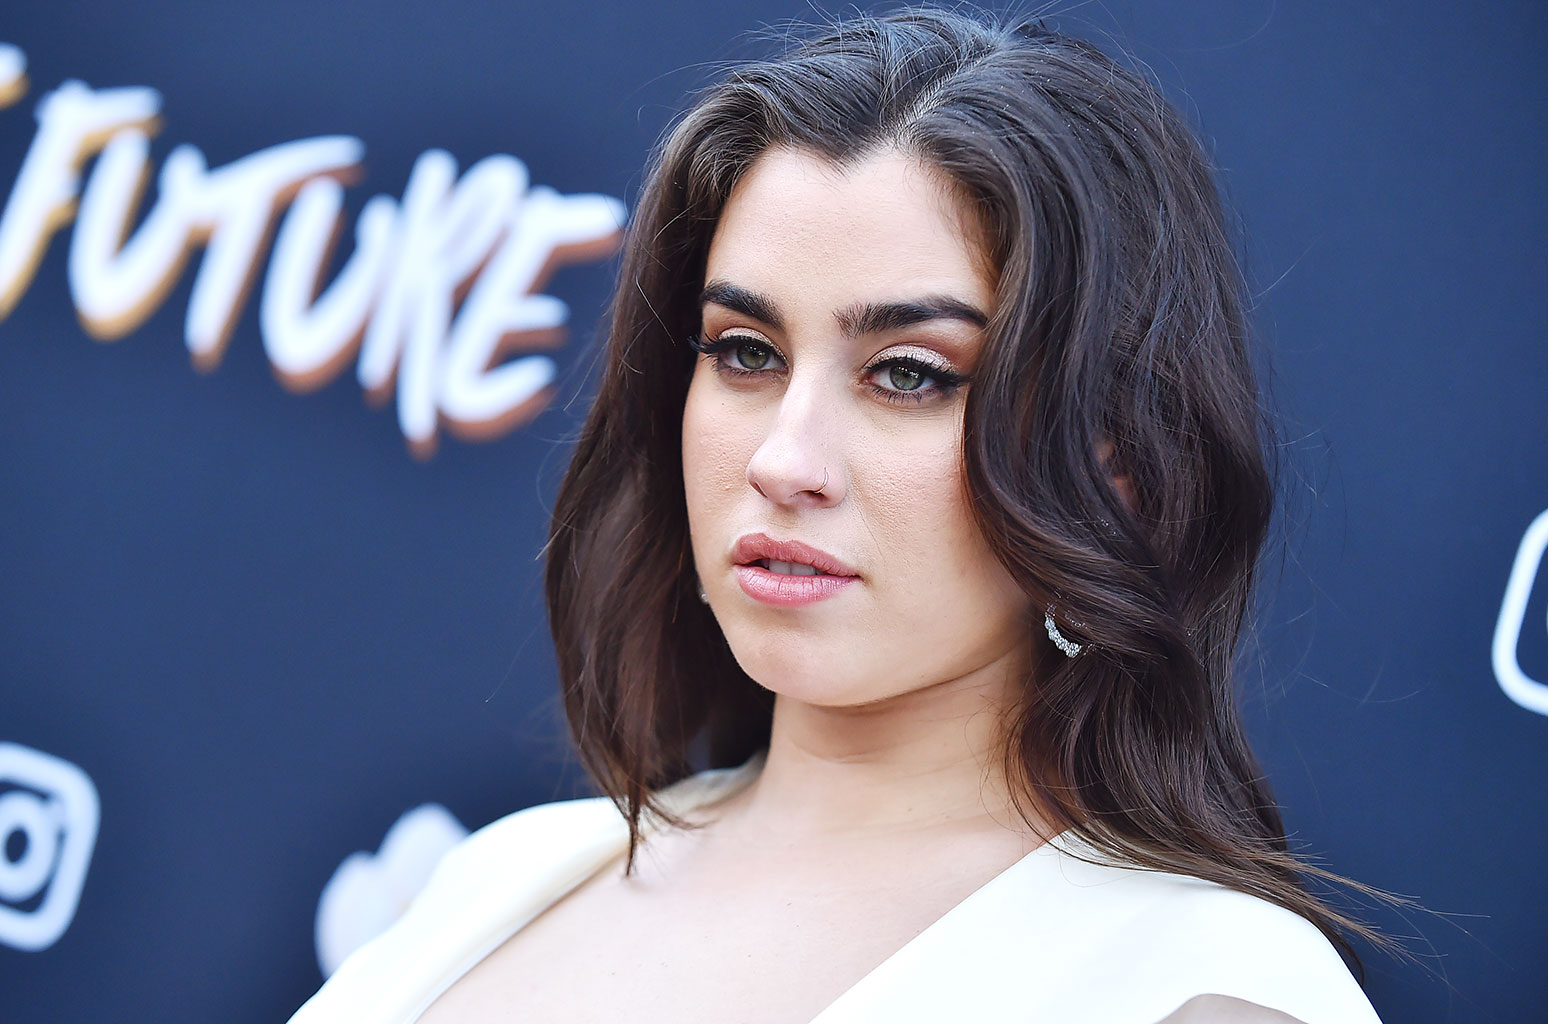 lauren-jauregui-reveals-how-she-deals-with-social-media-bullies